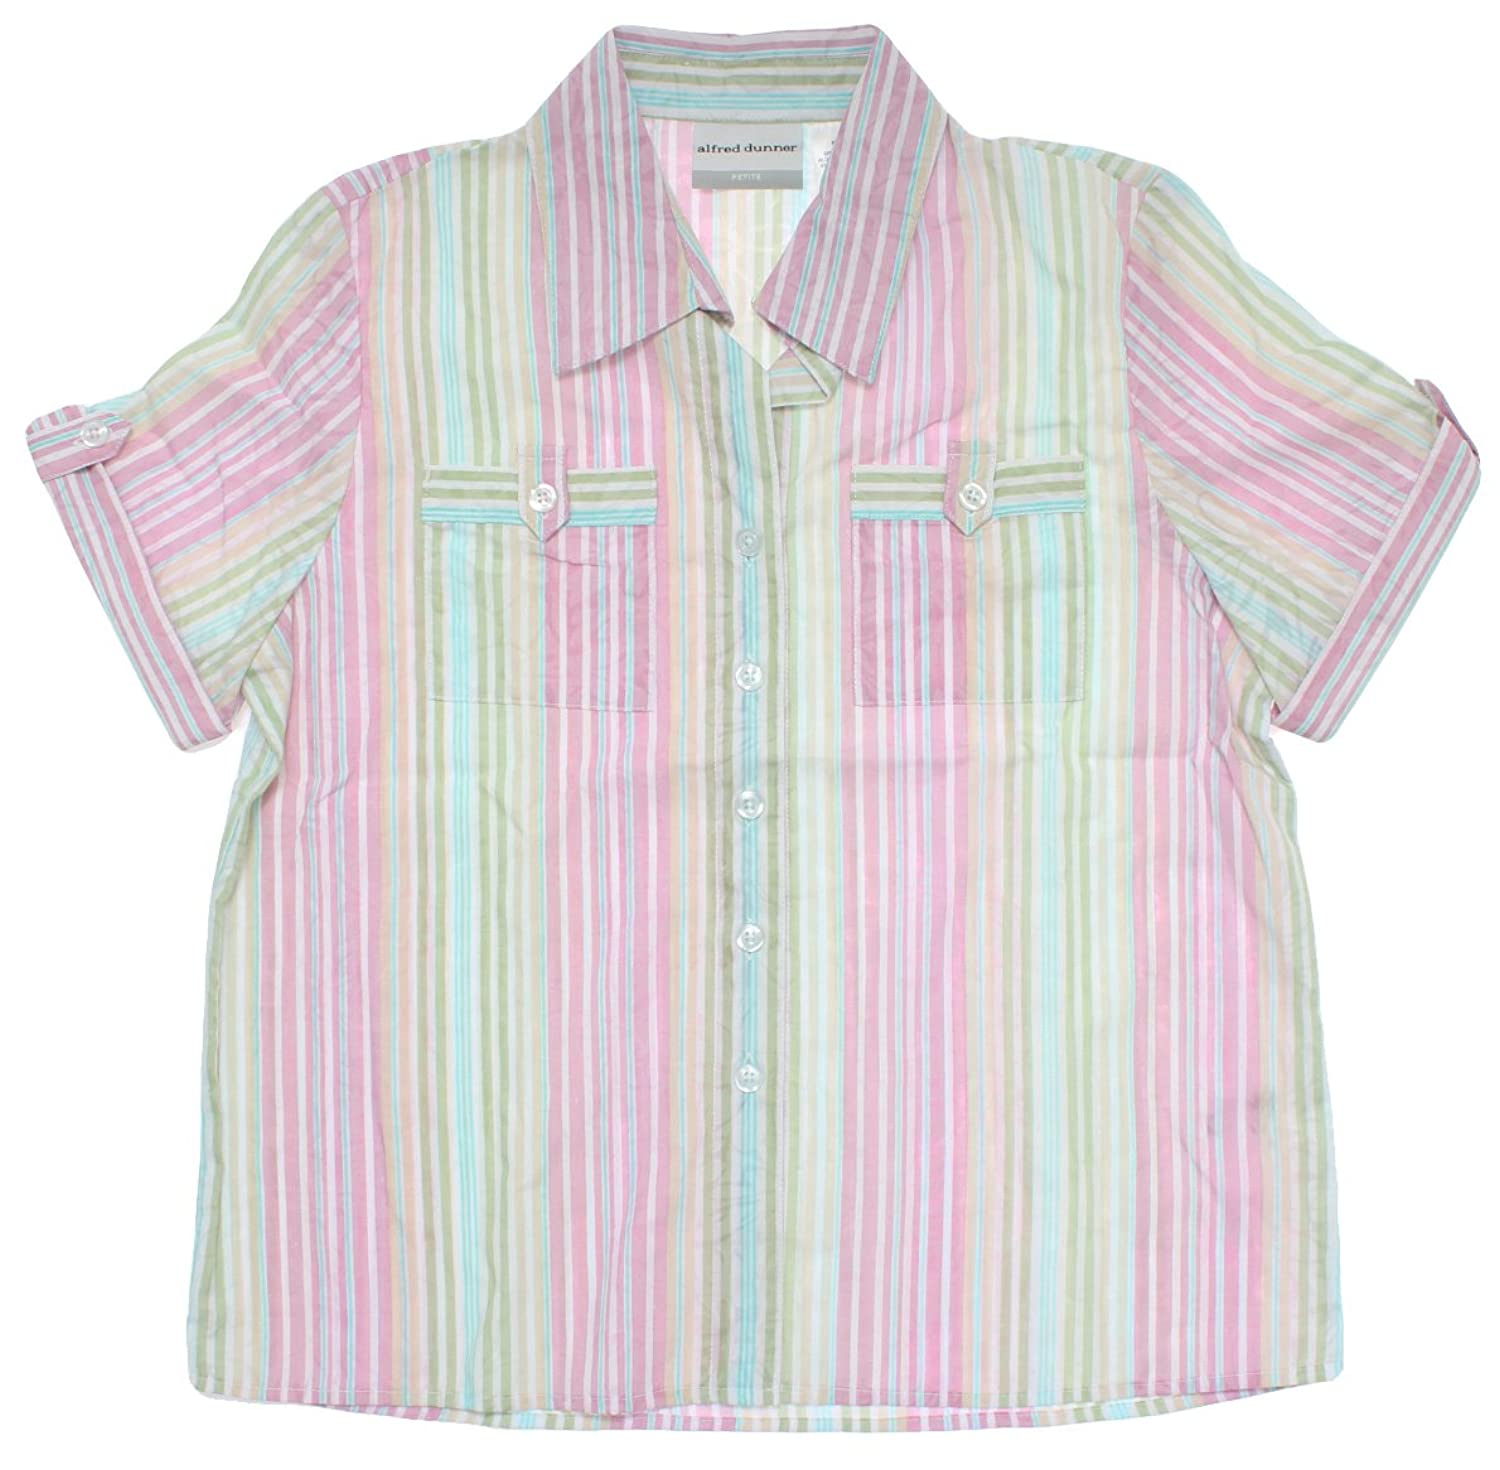 Alfred Dunner Women's Cape Cod Short Sleeve Stripe Button Down Blouse